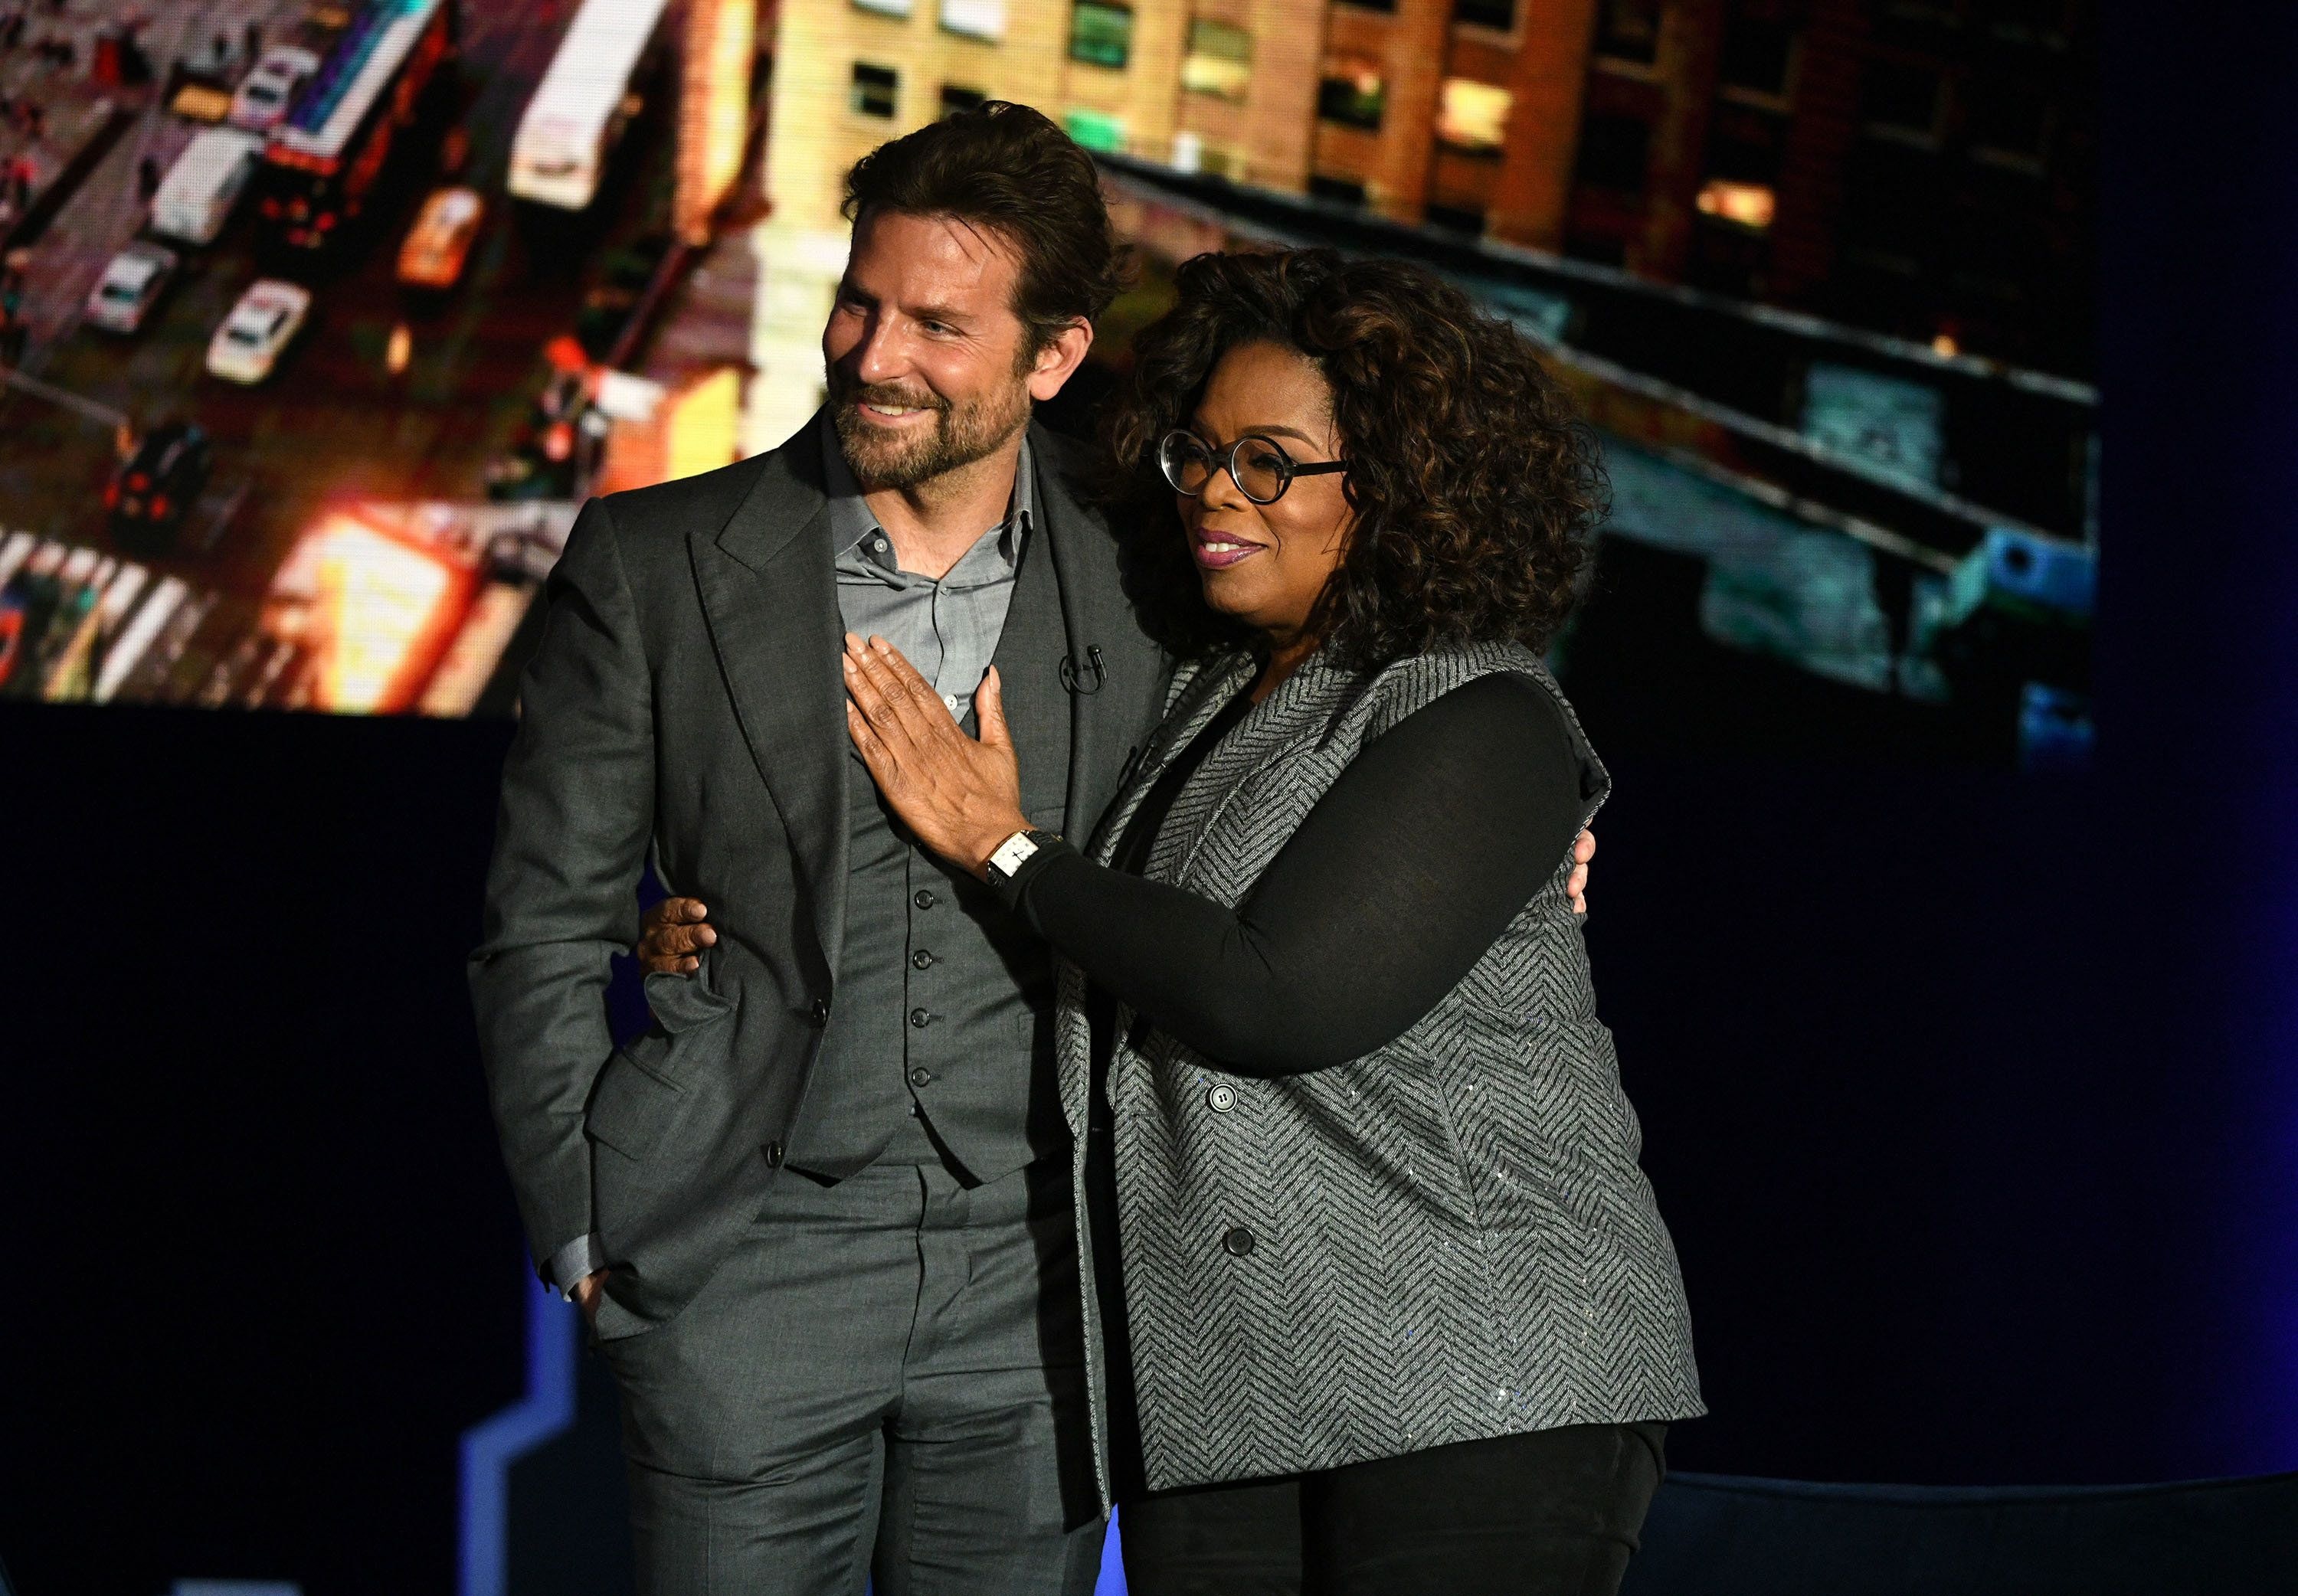 NEW YORK, NEW YORK - FEBRUARY 05: Bradley Cooper and Oprah Winfrey speak onstage during Oprah's SuperSoul Conversations at PlayStation Theater on February 05, 2019 in New York City. (Photo by Bryan Bedder/Getty Images for THR)